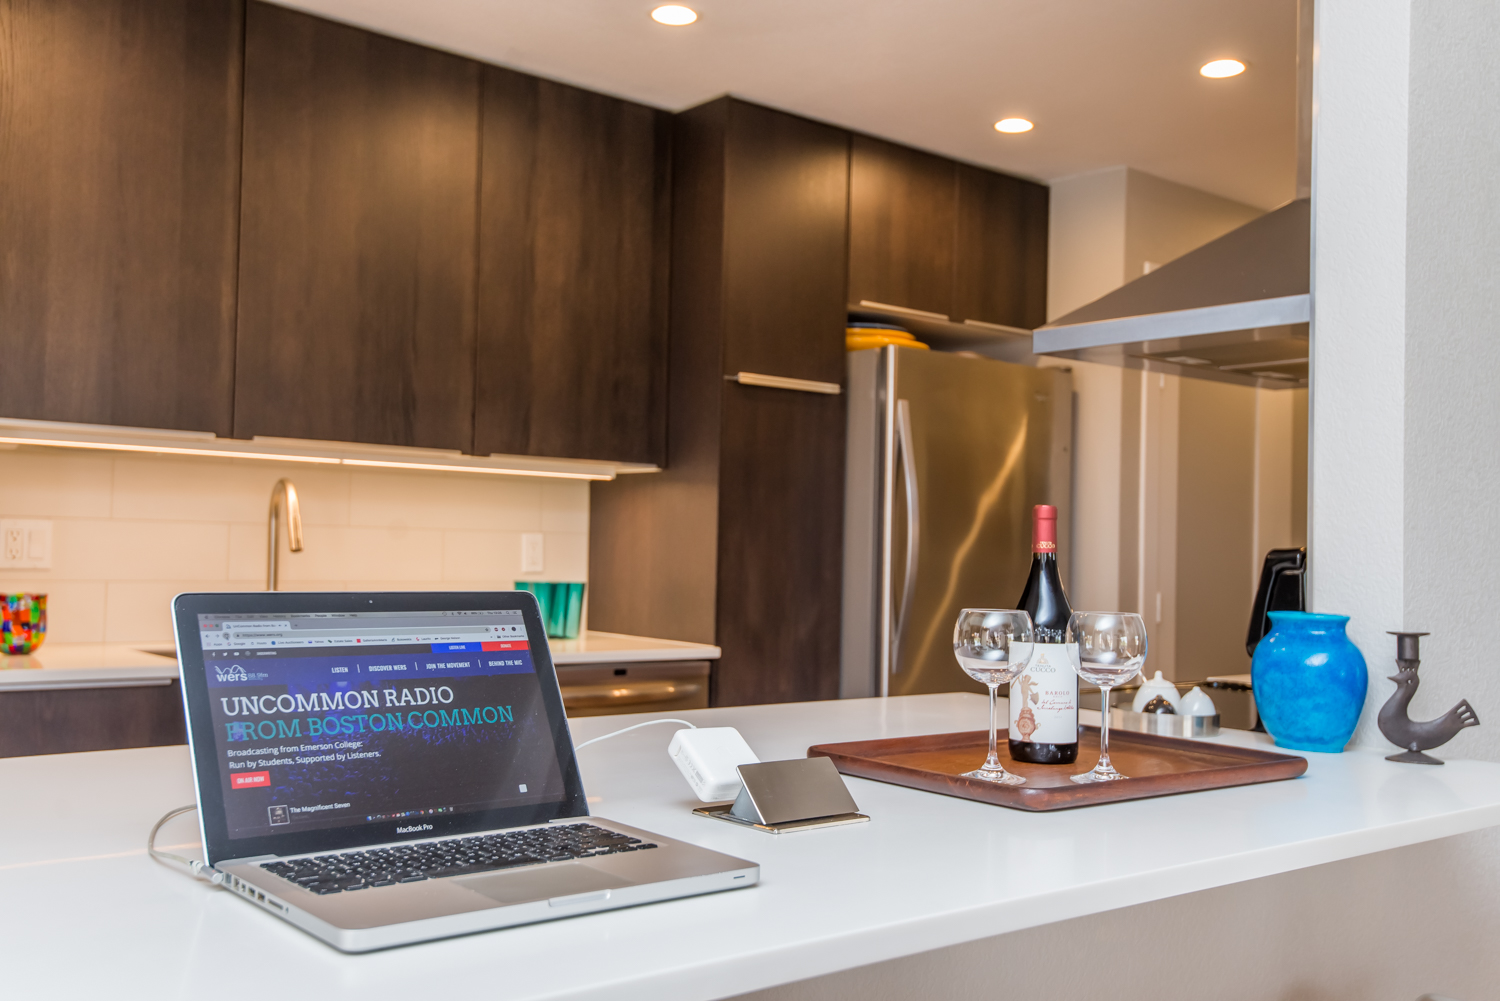 Kitchen bar features a pop-up outlet for laptops or phone charging.